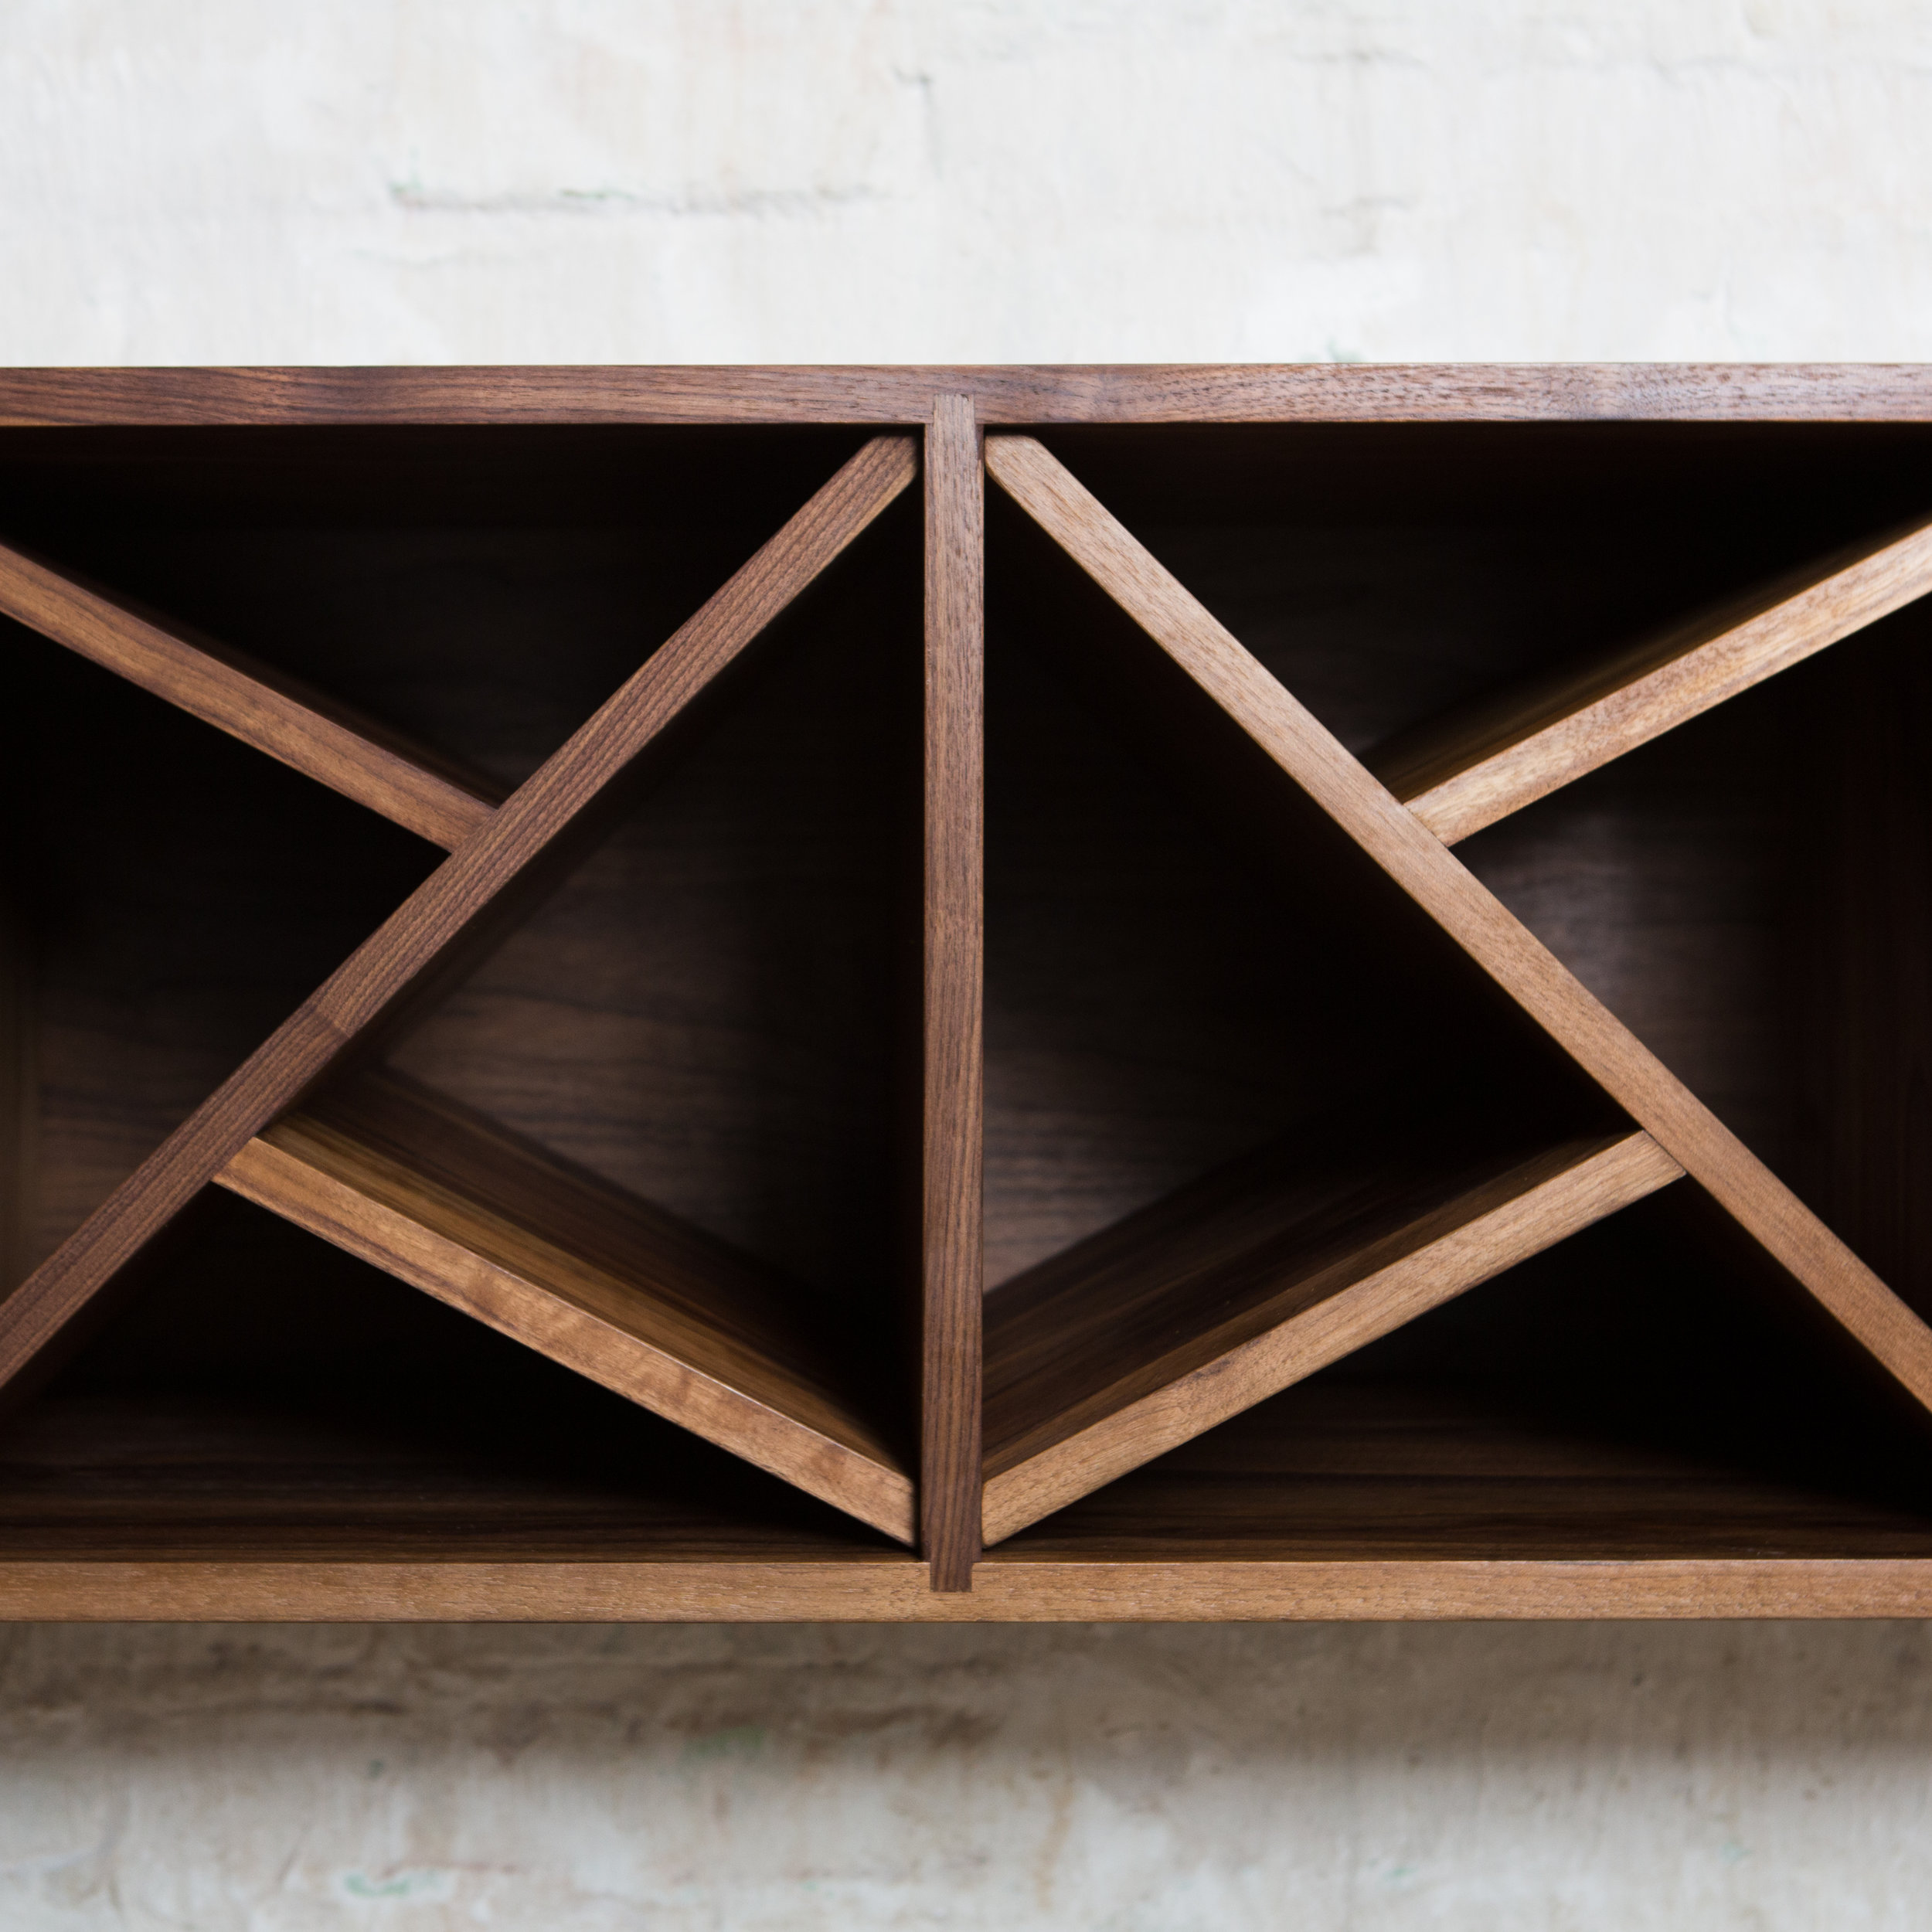 A warm dark stained wood shelving unit with angled shelves.